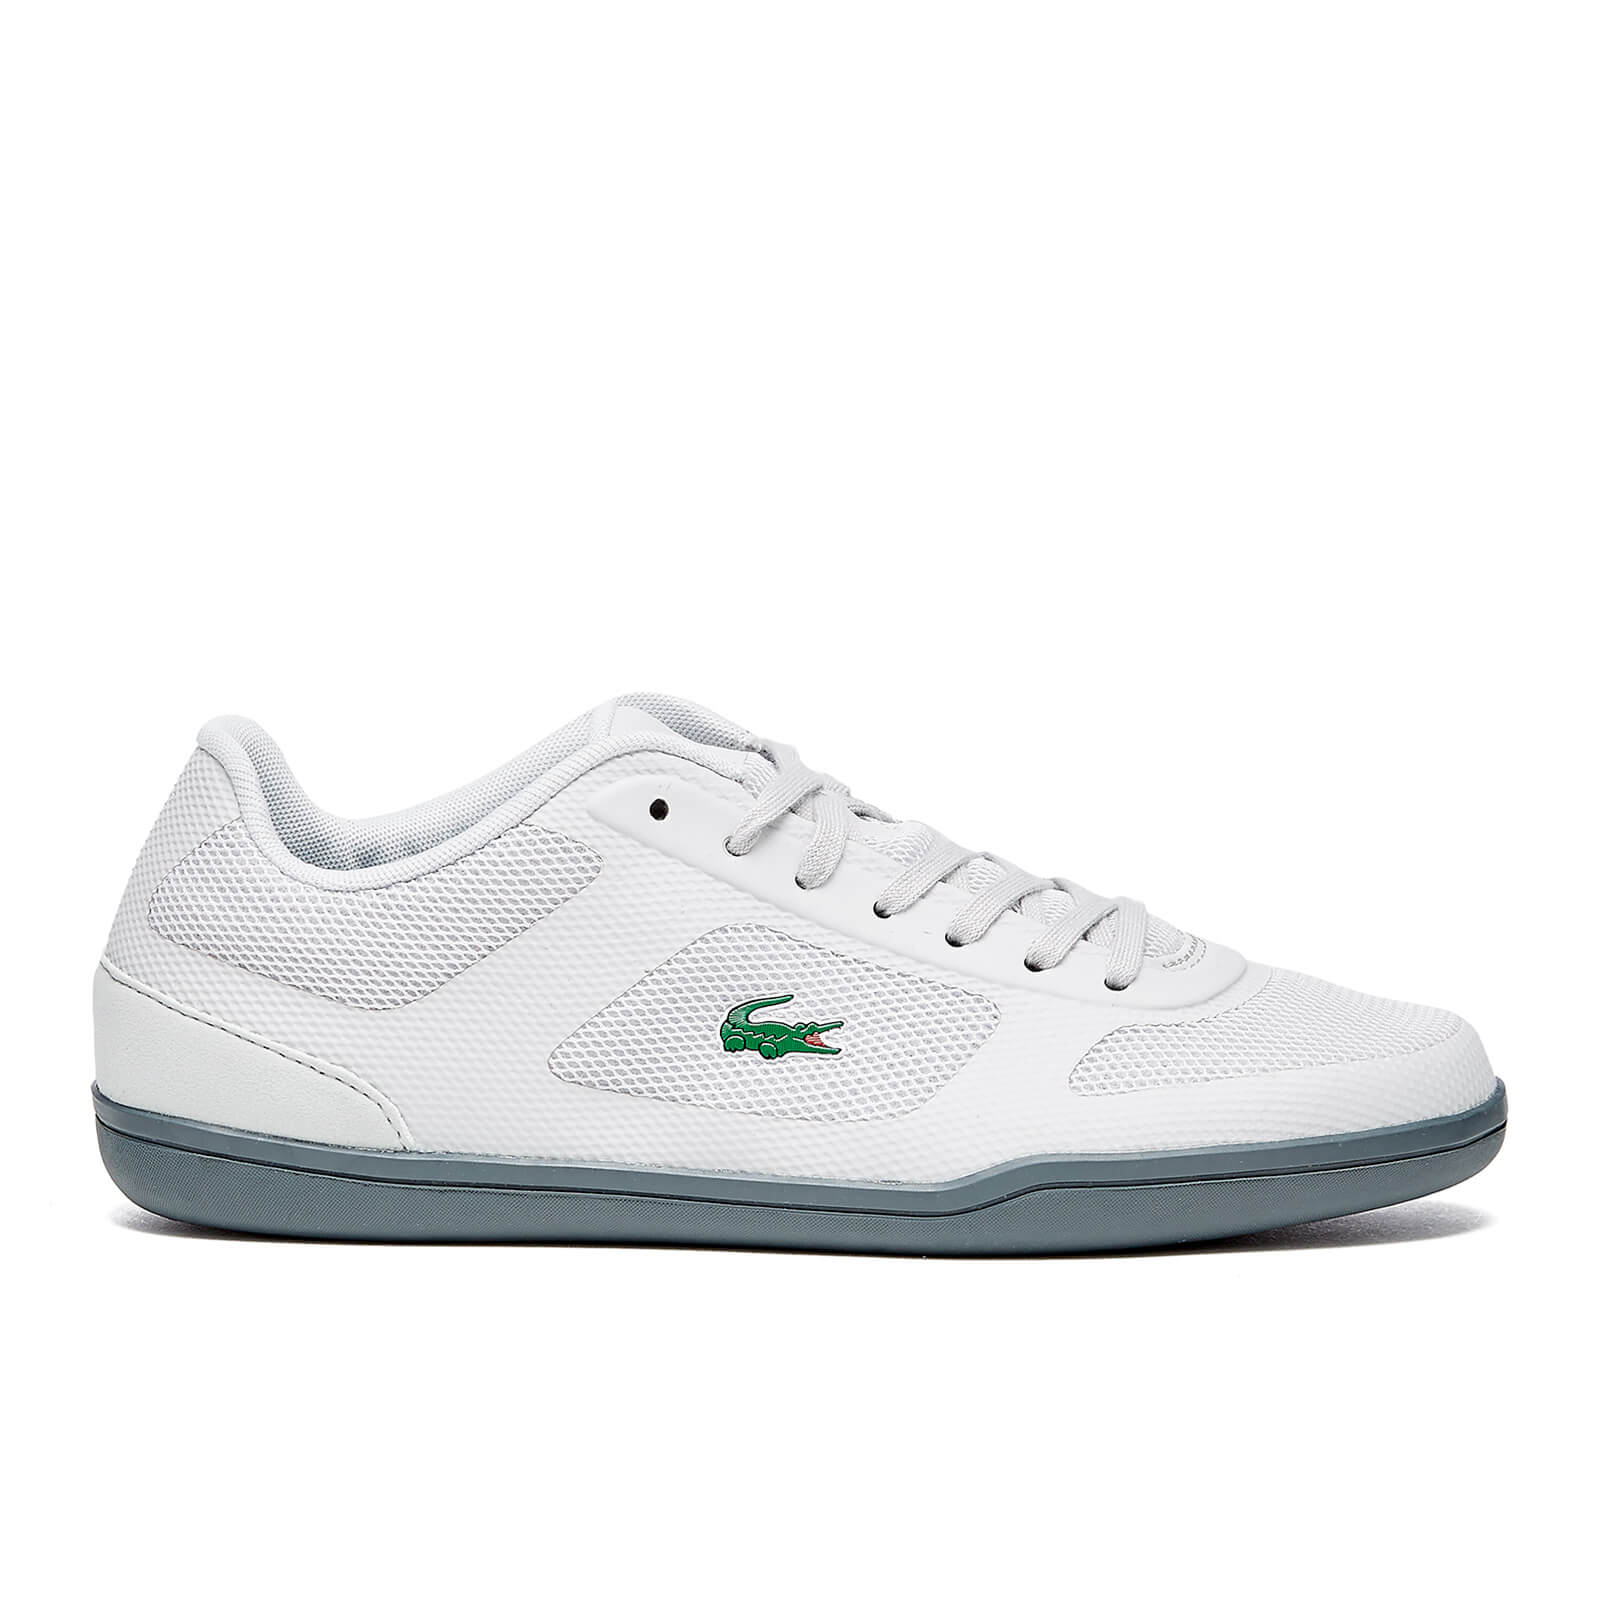 5b32a465ec69f Lacoste Men s Court-Minimal Sport 416 Trainers - Light Grey - Free UK  Delivery over £50